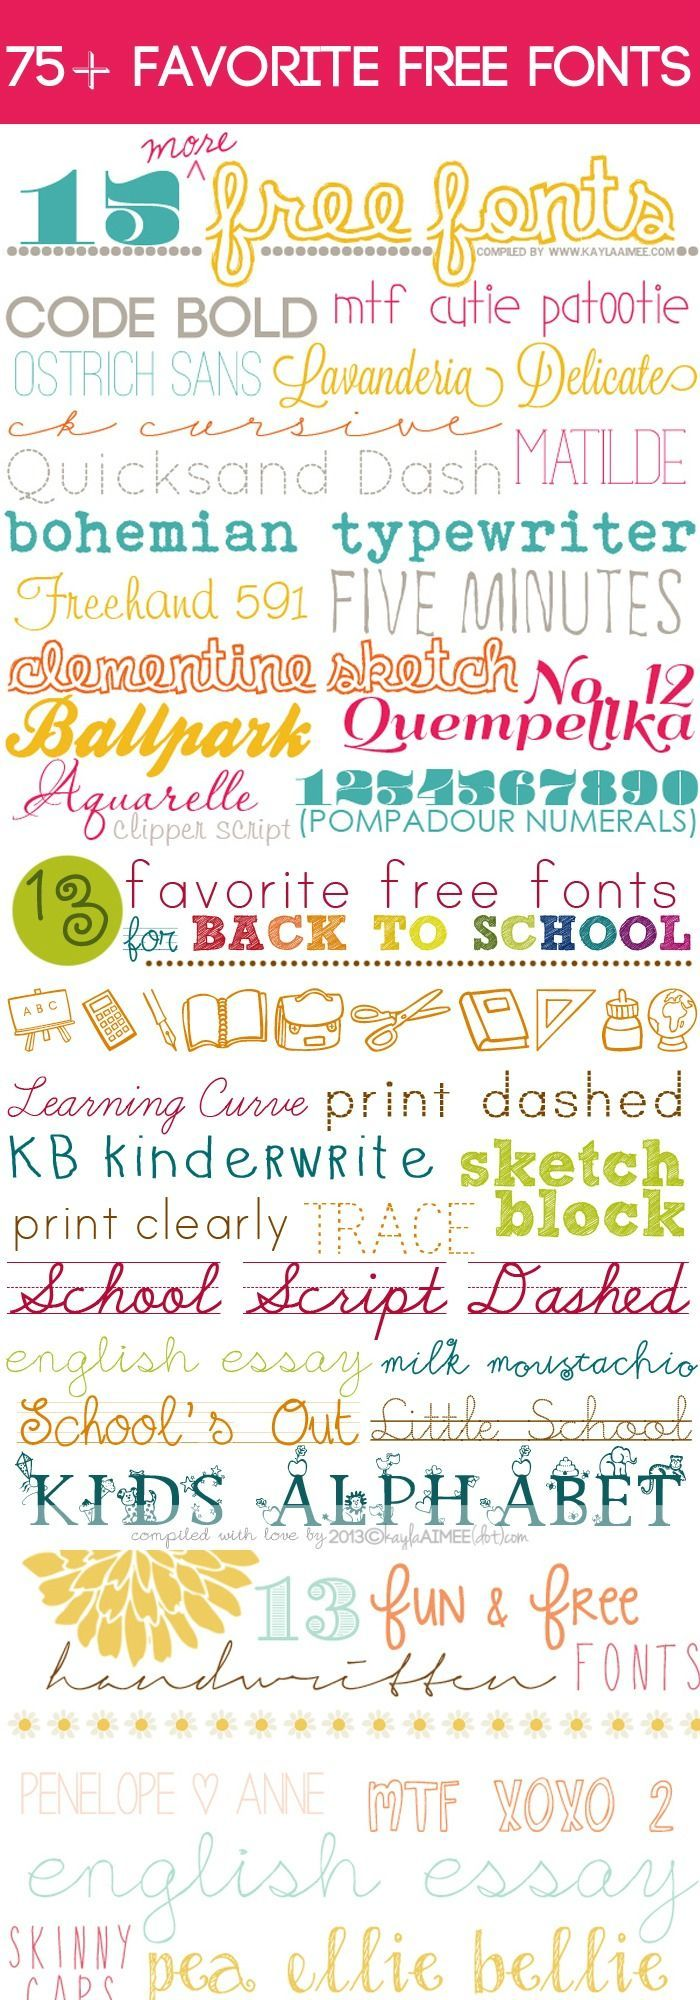 cursive letters font 1175 best images about cool printables on 1175